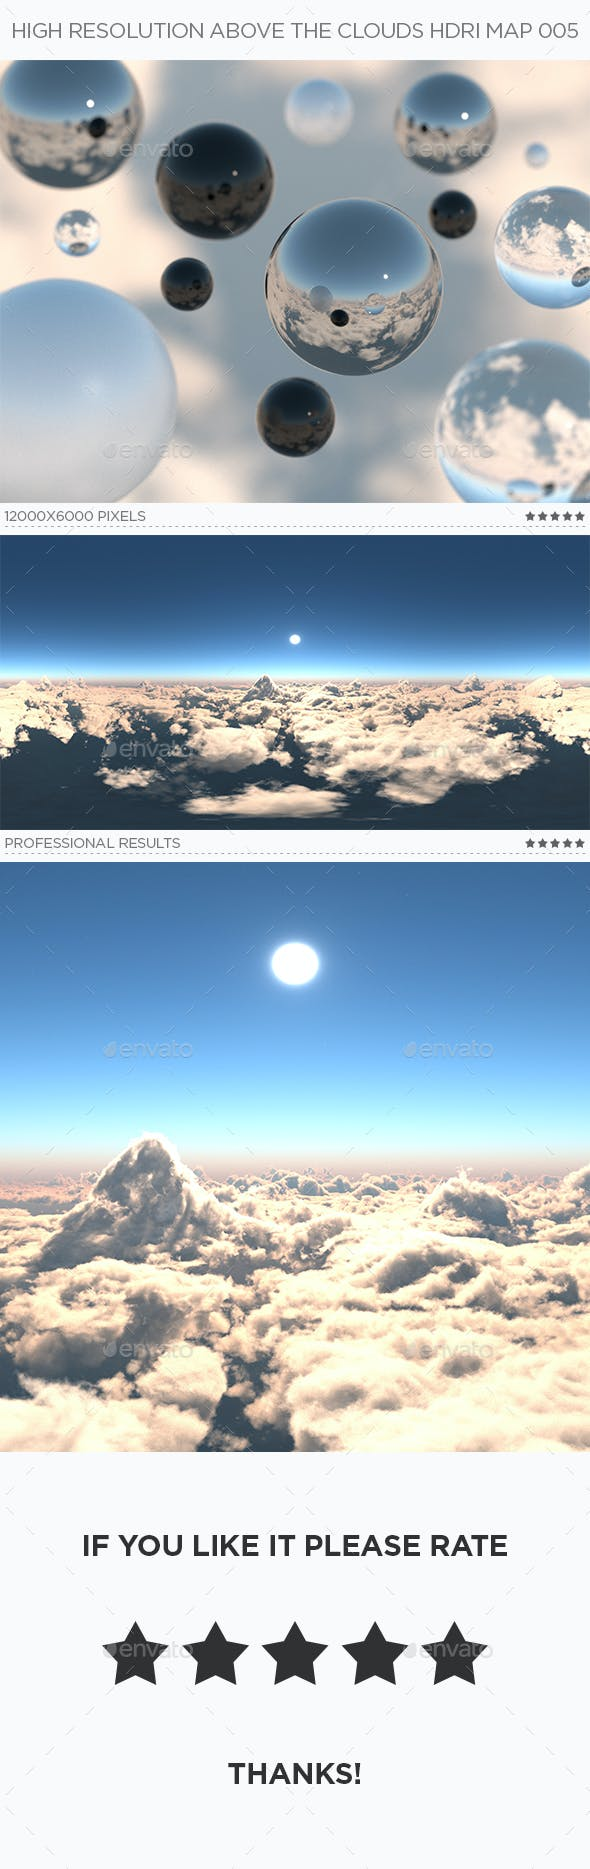 High Resolution Above The Clouds HDRi Map 005 - 3DOcean Item for Sale